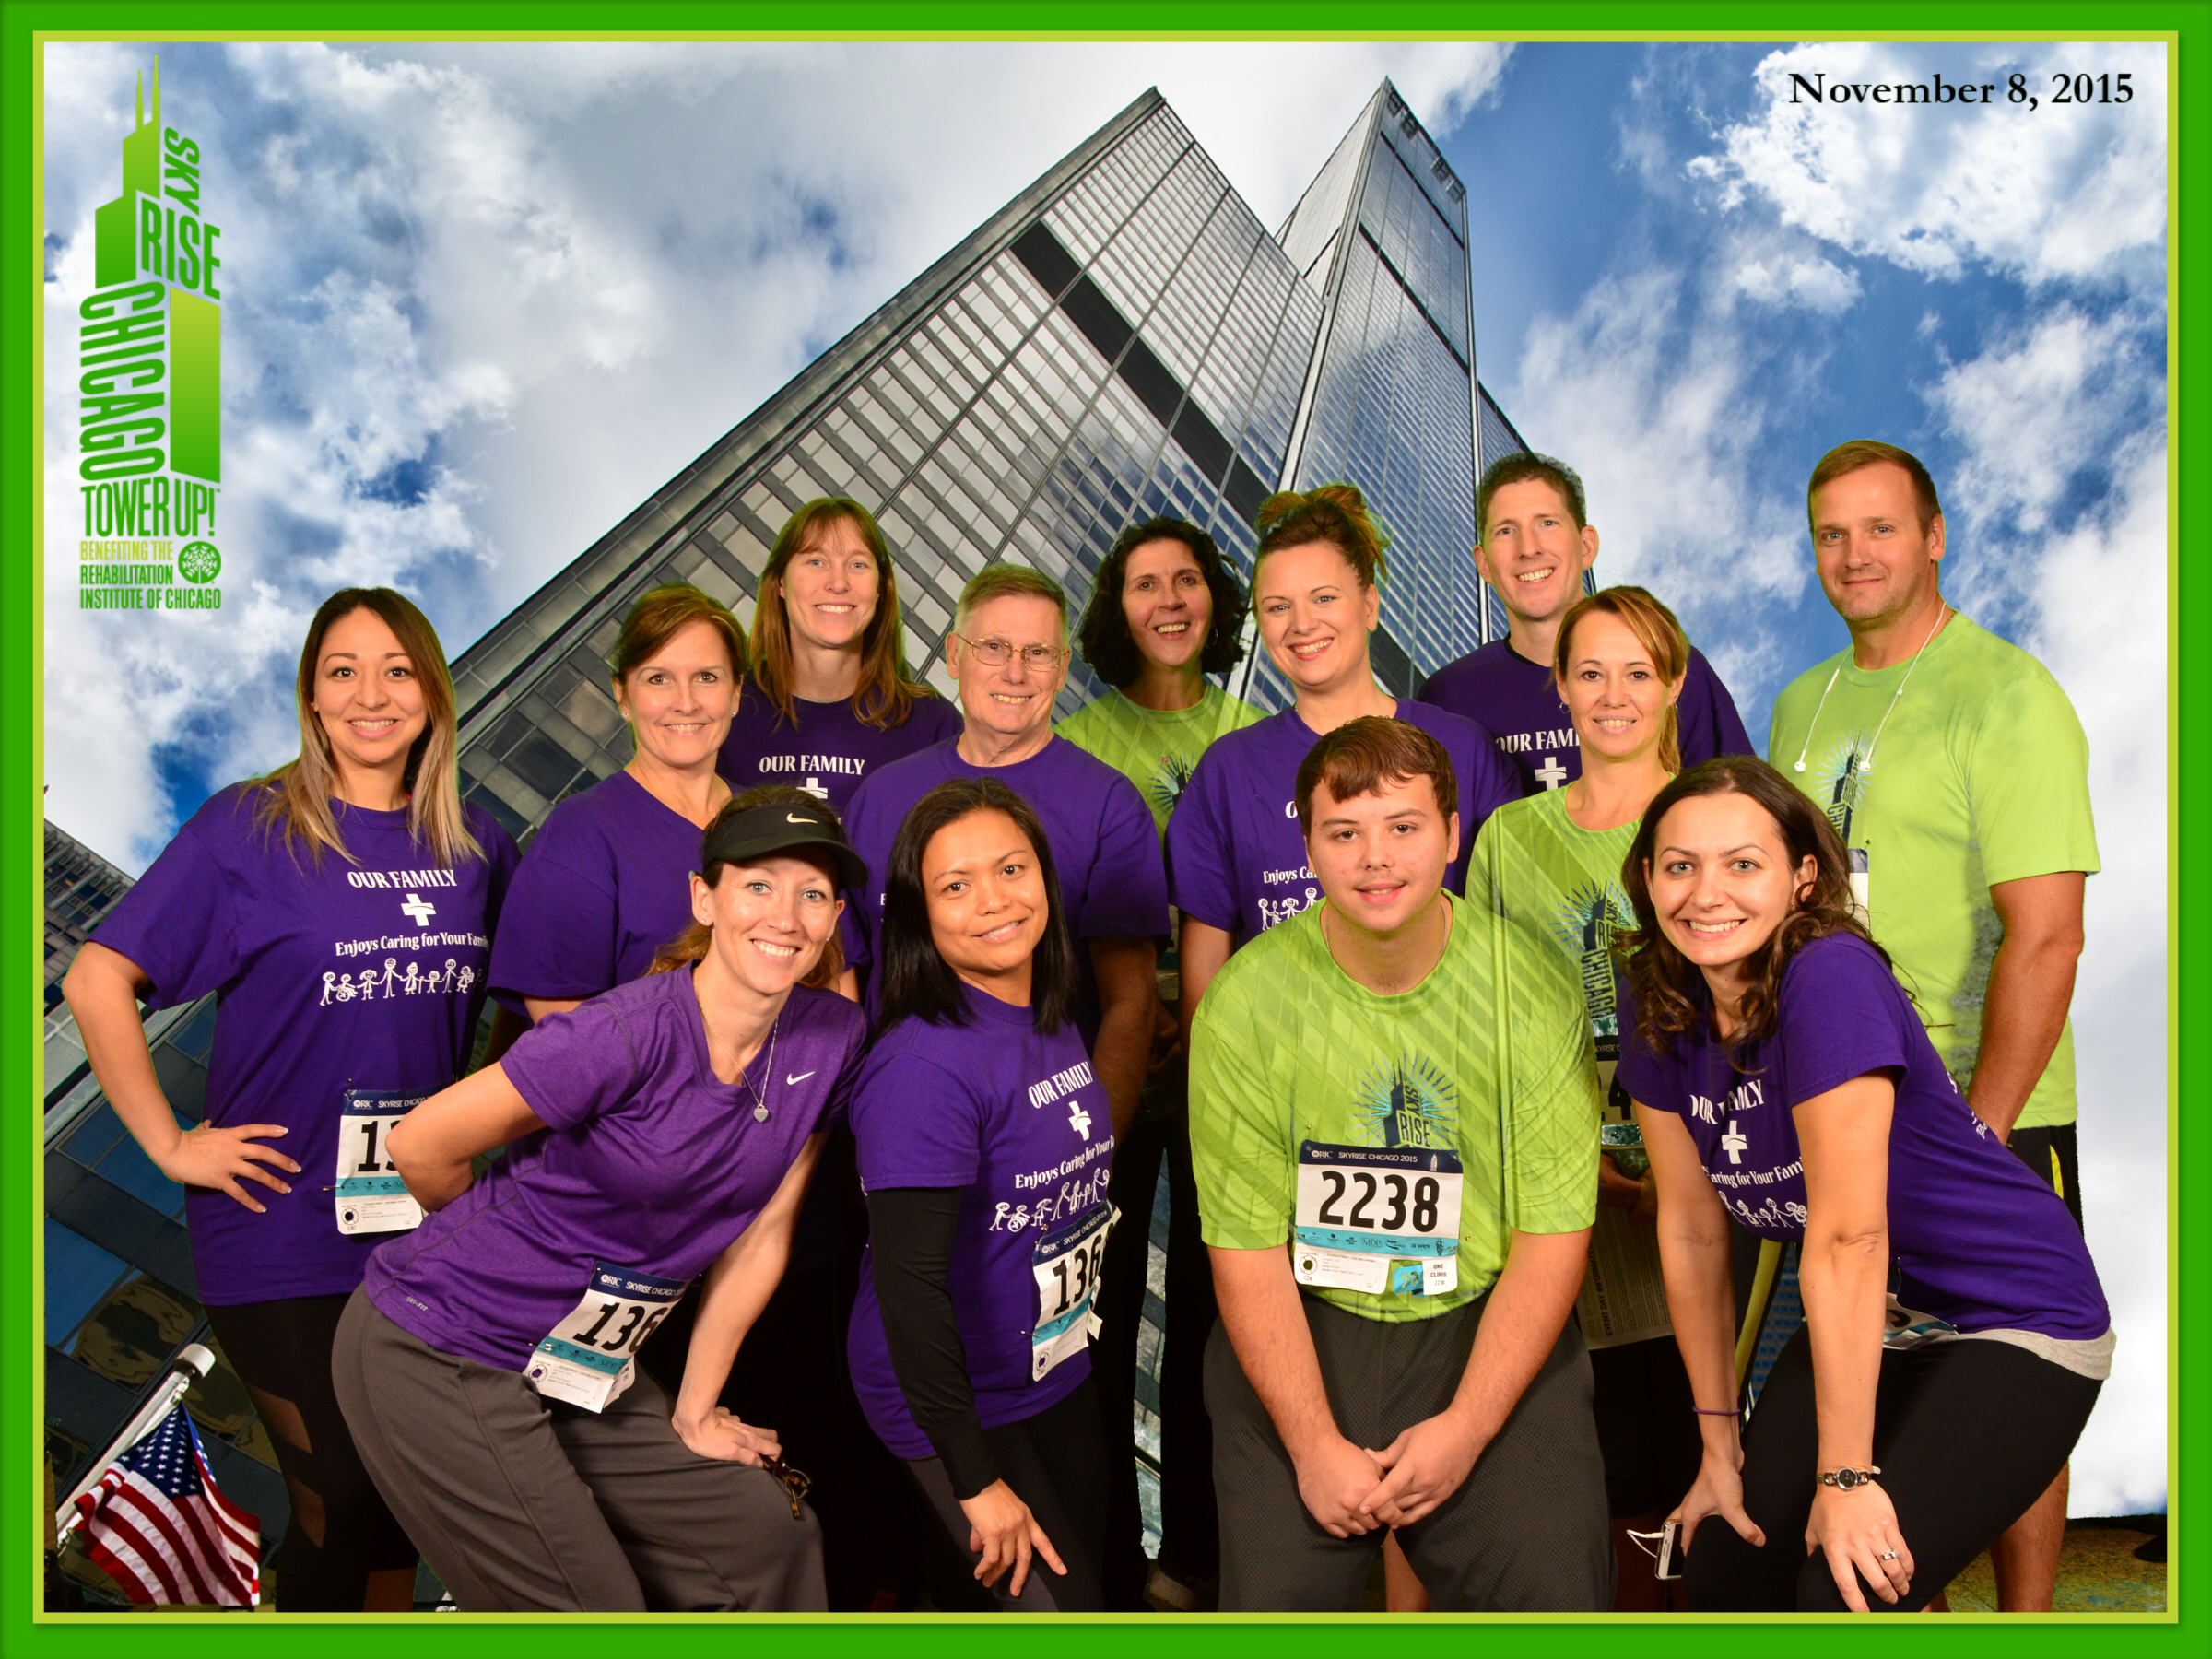 Silver Cross employees, patient climb Willis stairs in fundraiser | The Times Weekly | Community ...